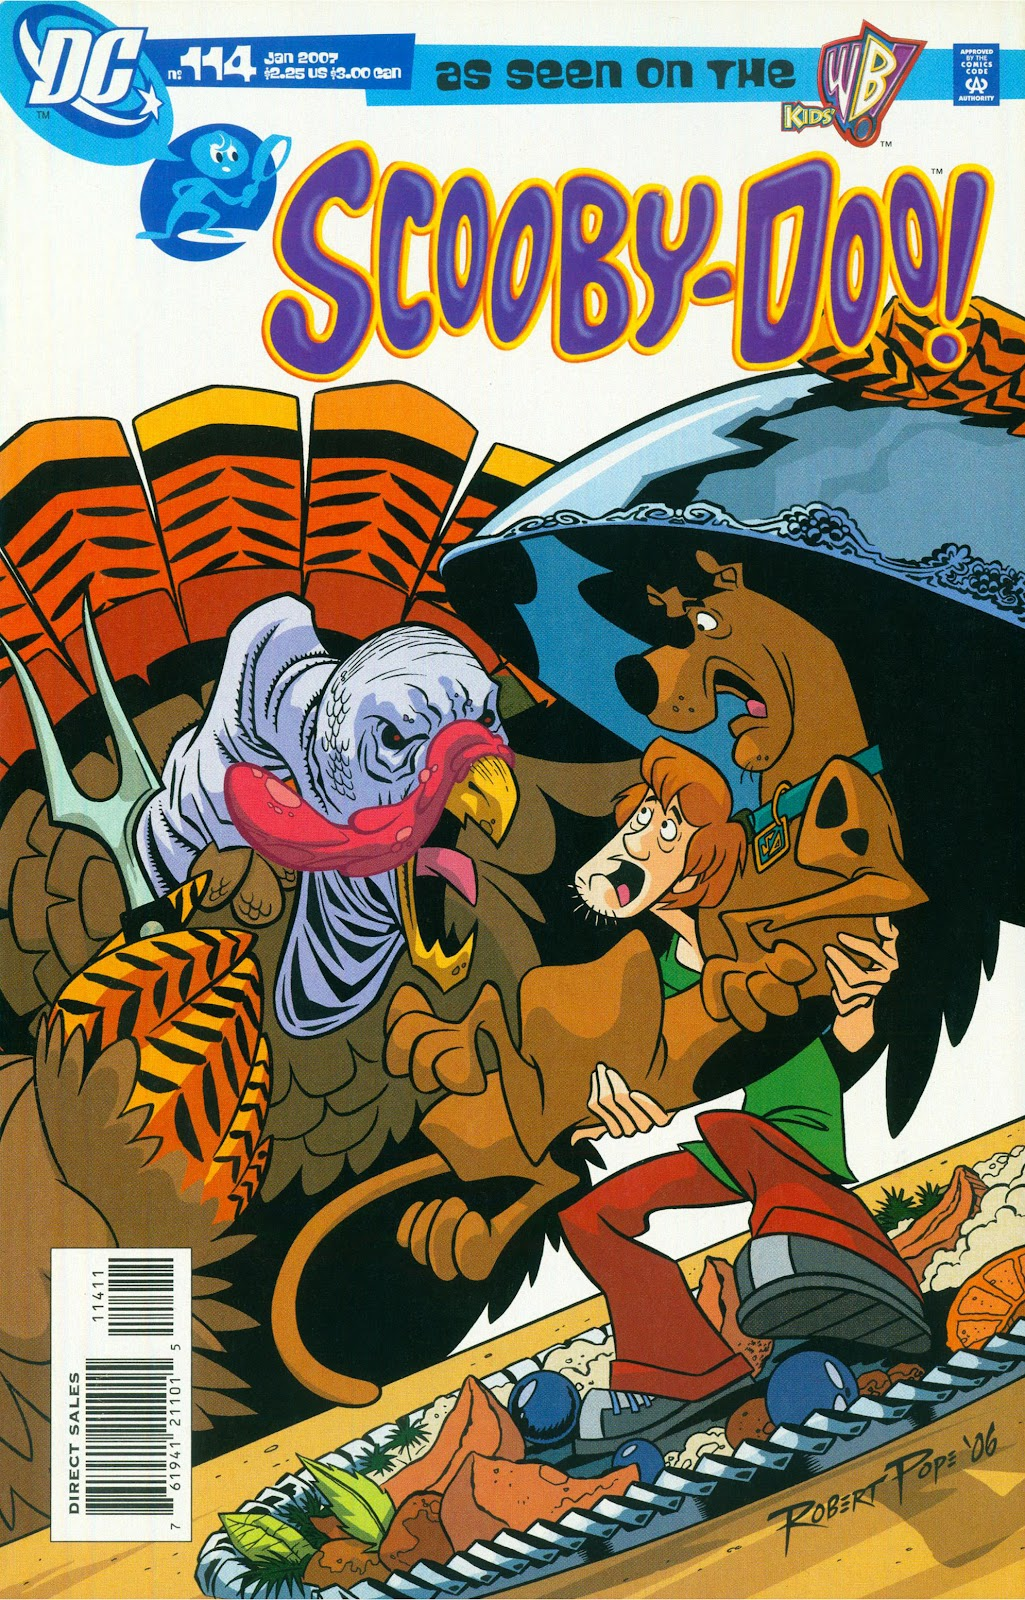 Read online Scooby-Doo (1997) comic -  Issue #114 - 1